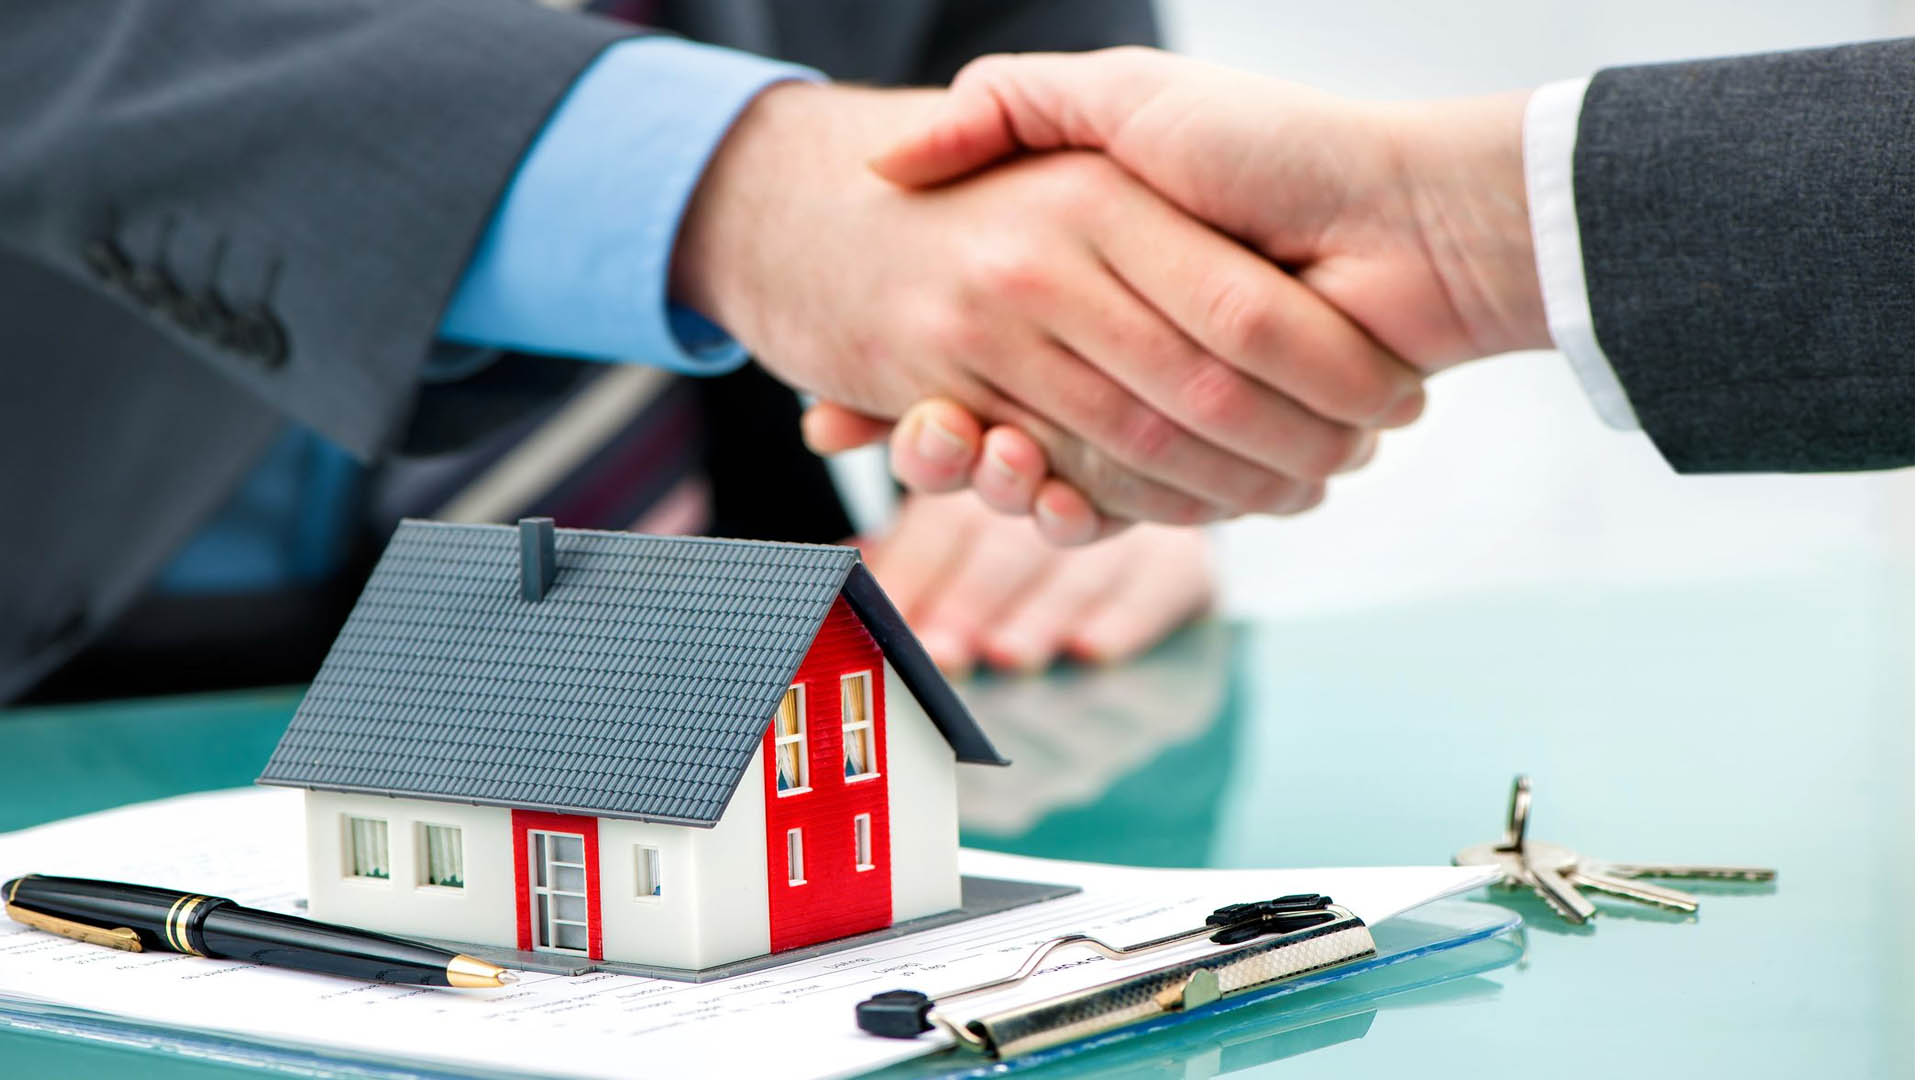 How to choose a good real estate agent?